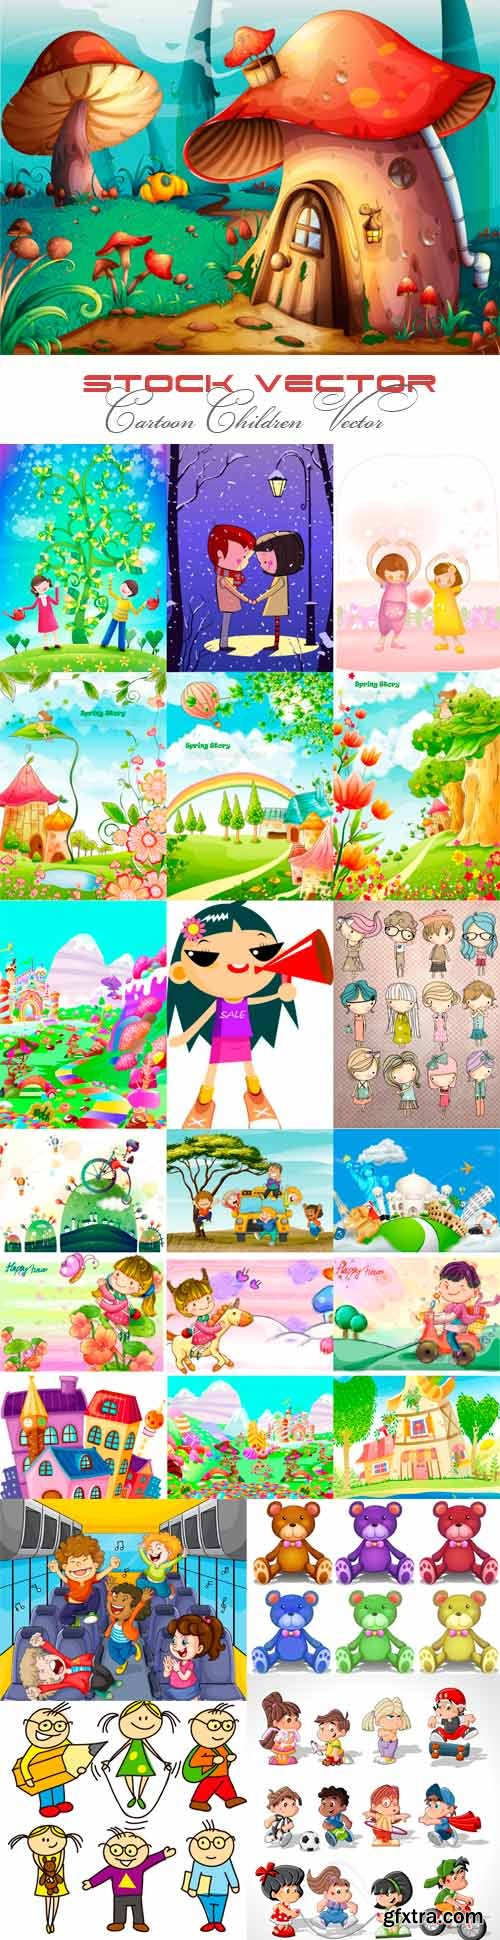 Cartoon children vector images